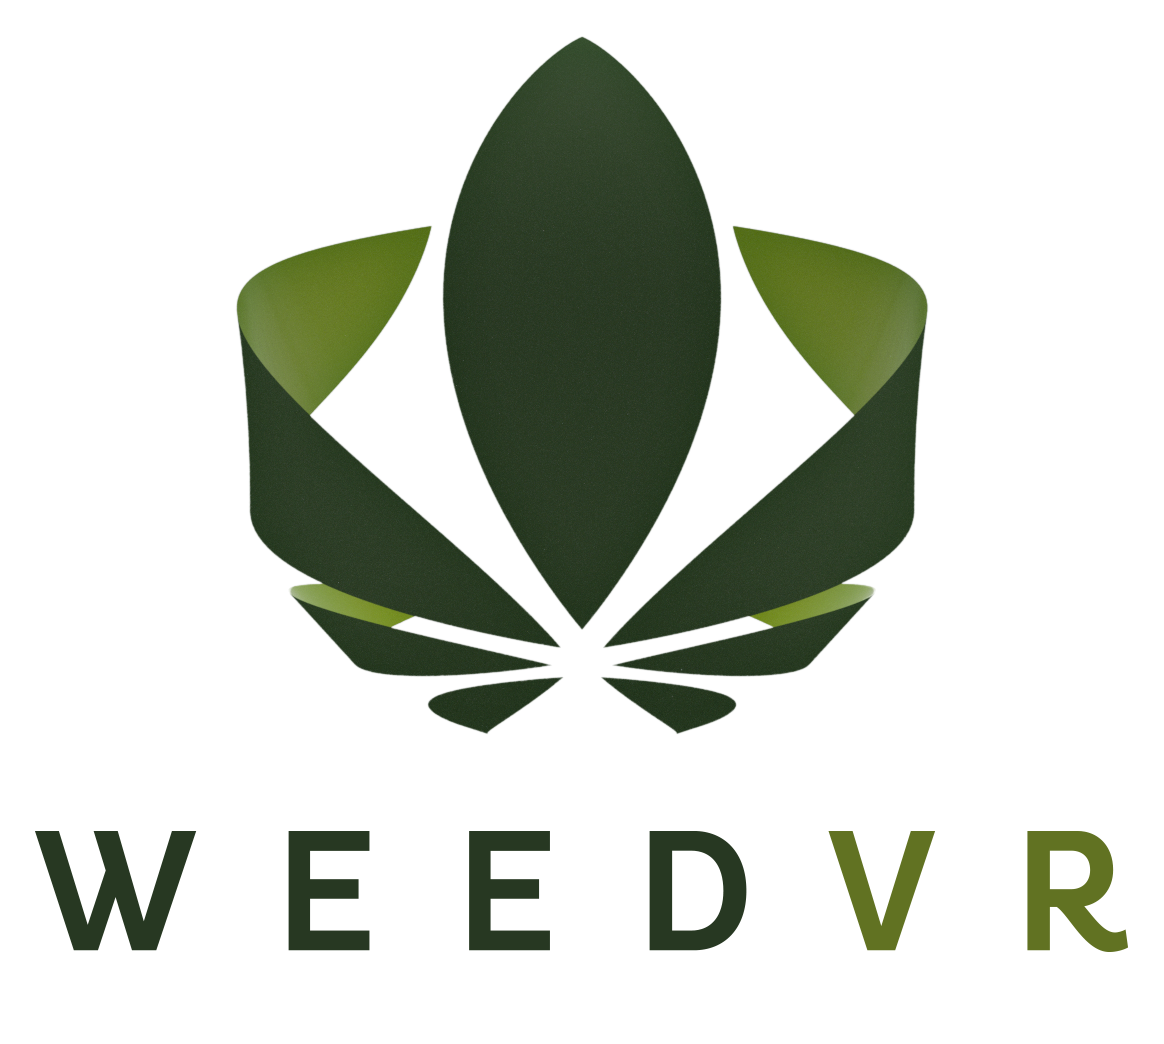 Weed VR Launches @ 420 to Great Response